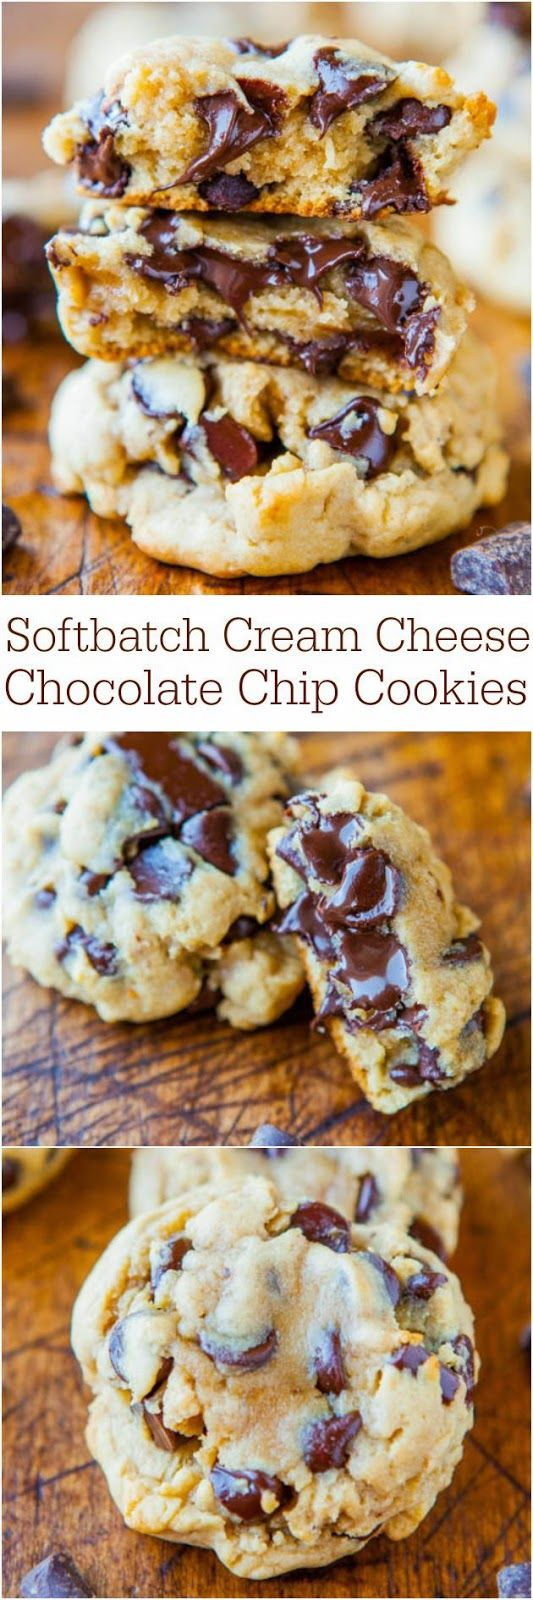 123 Picsi : Softbatch Cream Cheese Chocolate Chip Cookies